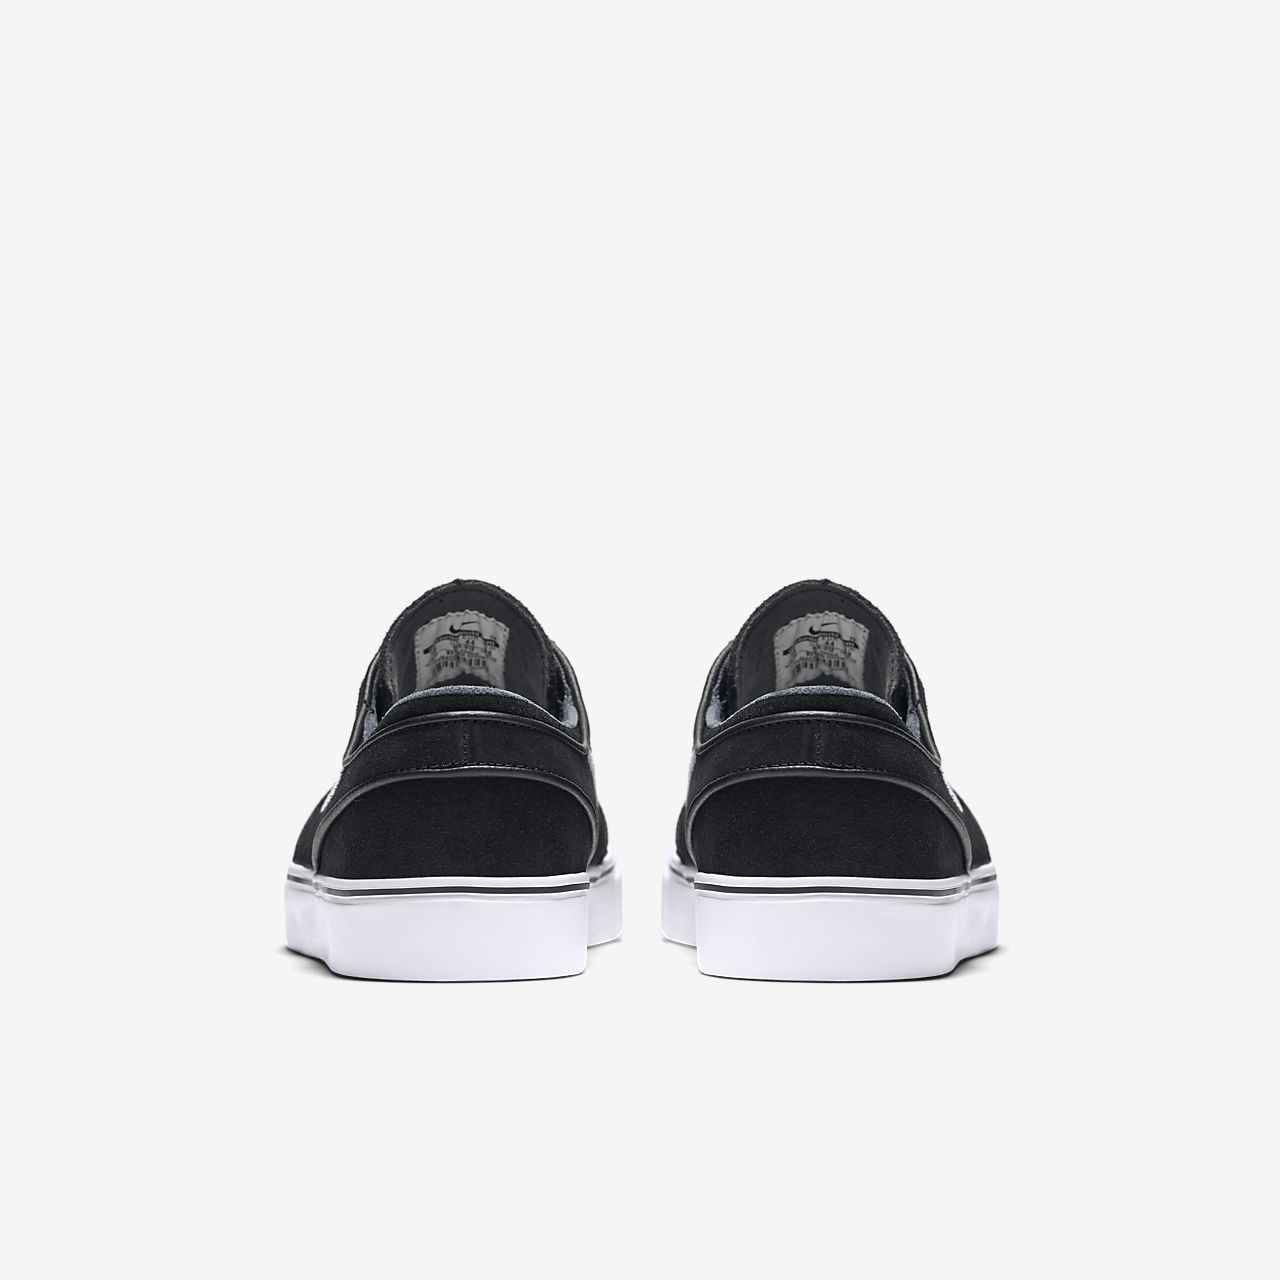 lowest price 319a1 8f377 ... Chaussure de skateboard Nike SB Zoom Stefan Janoski OG pour Homme